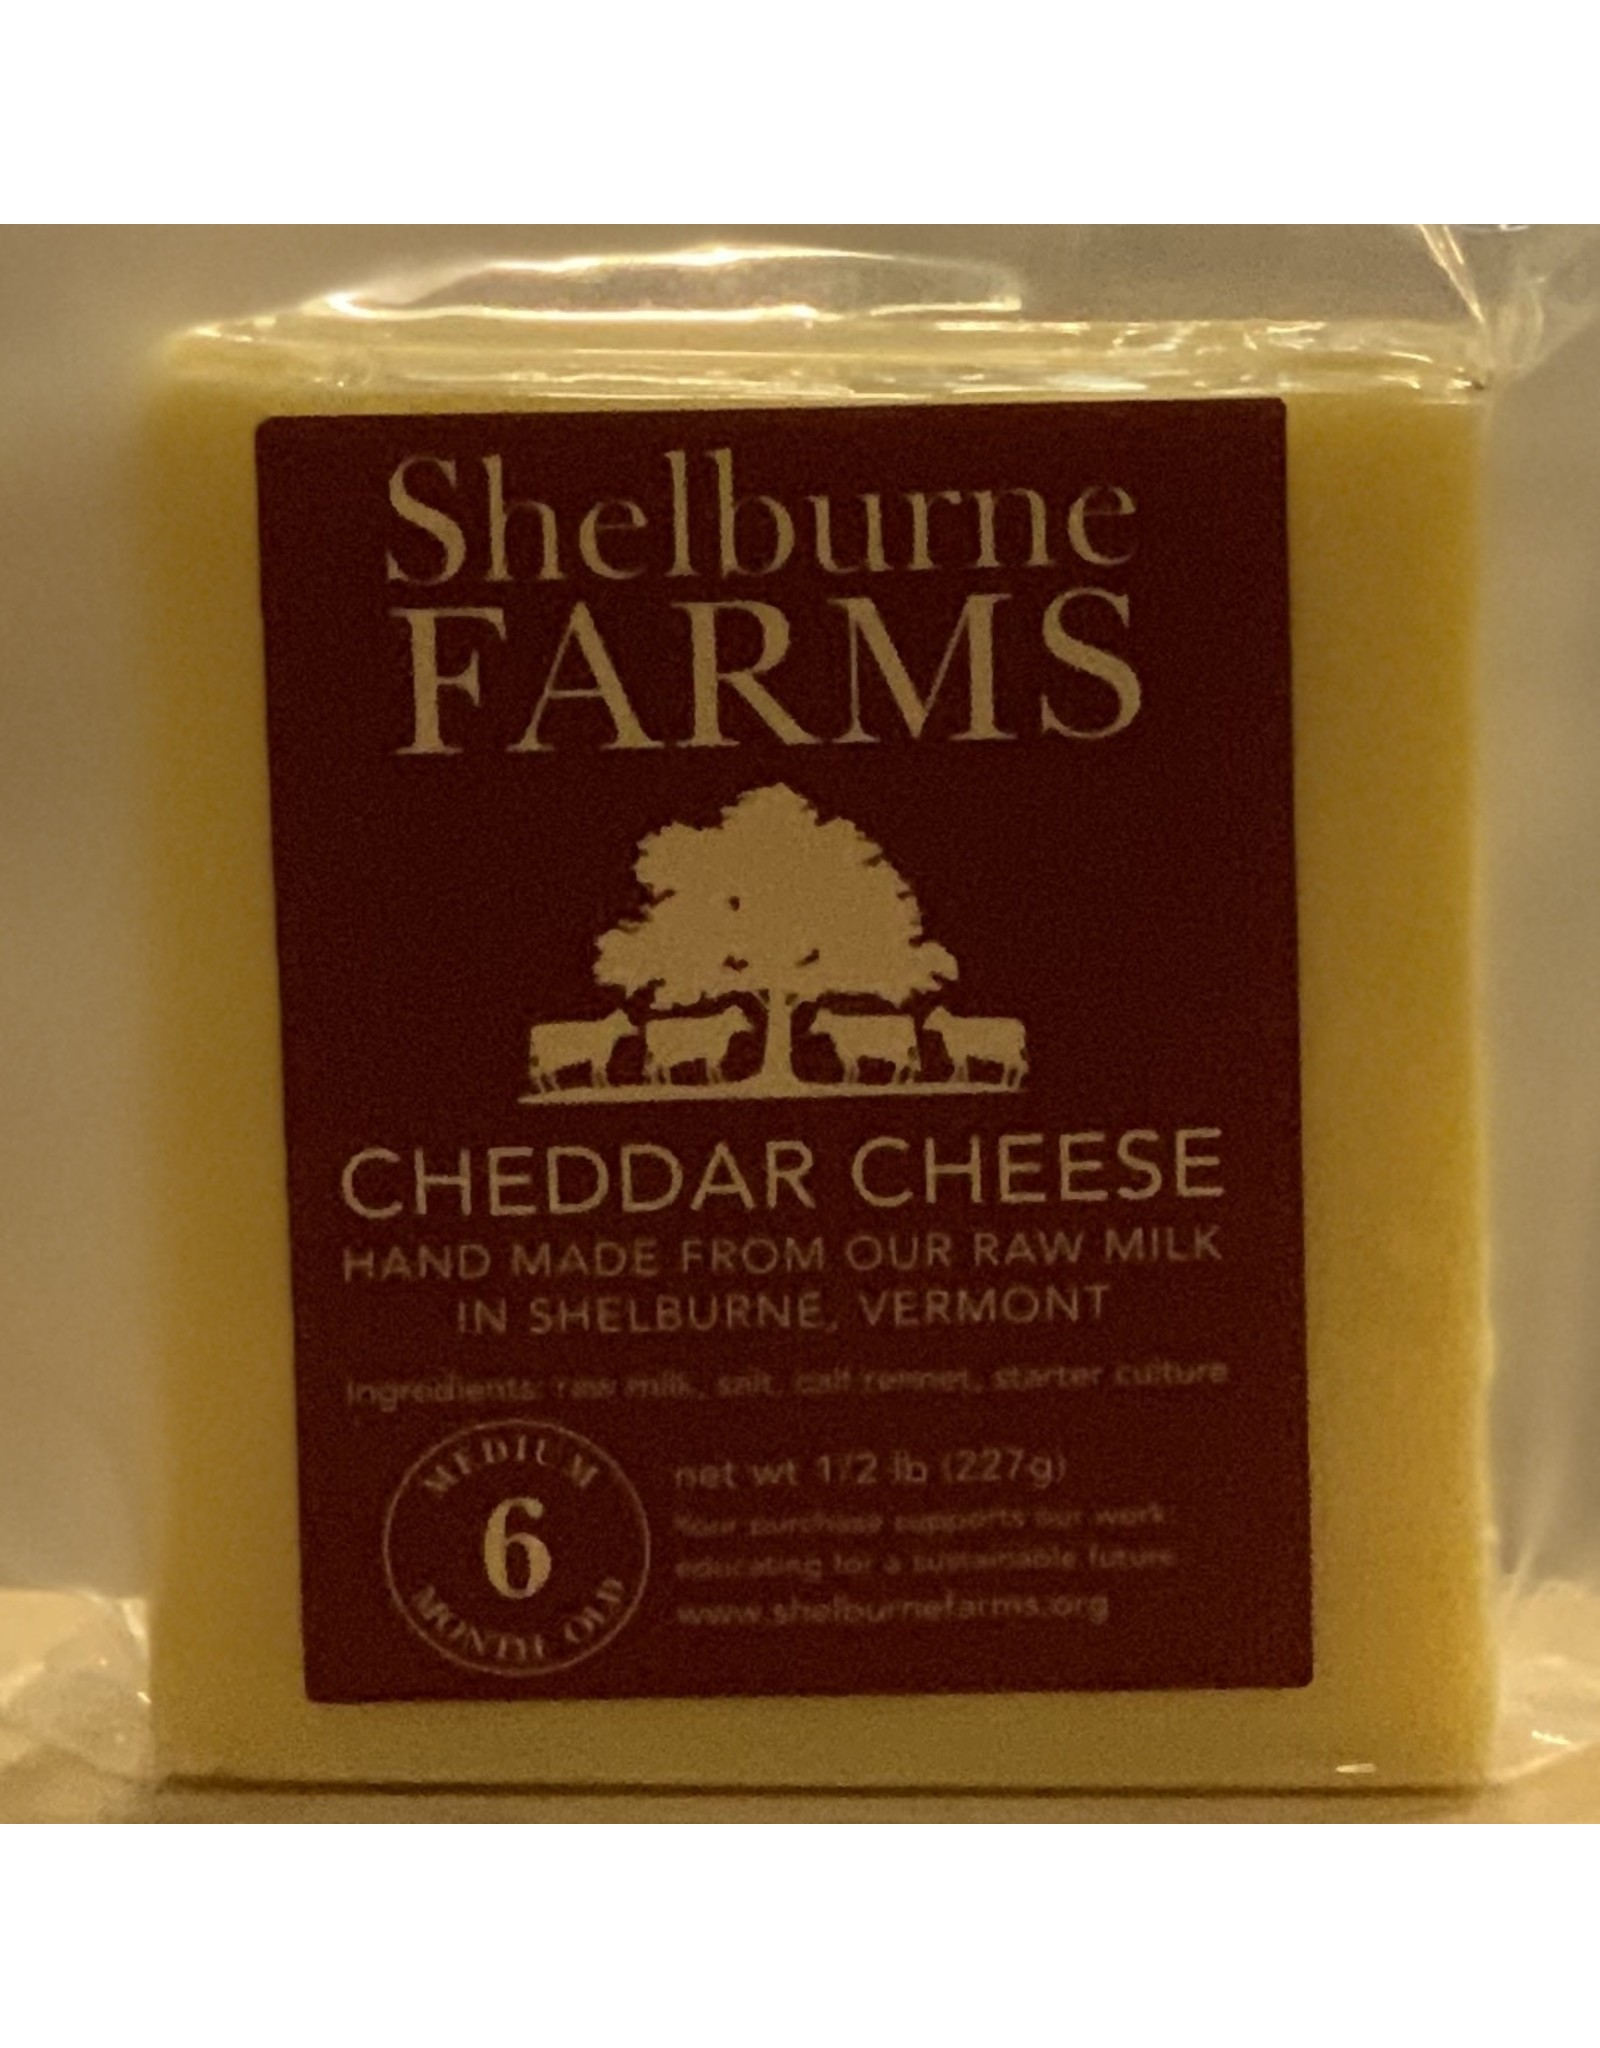 Cheese Shelburne Farms Cheddar Cheese 6 month